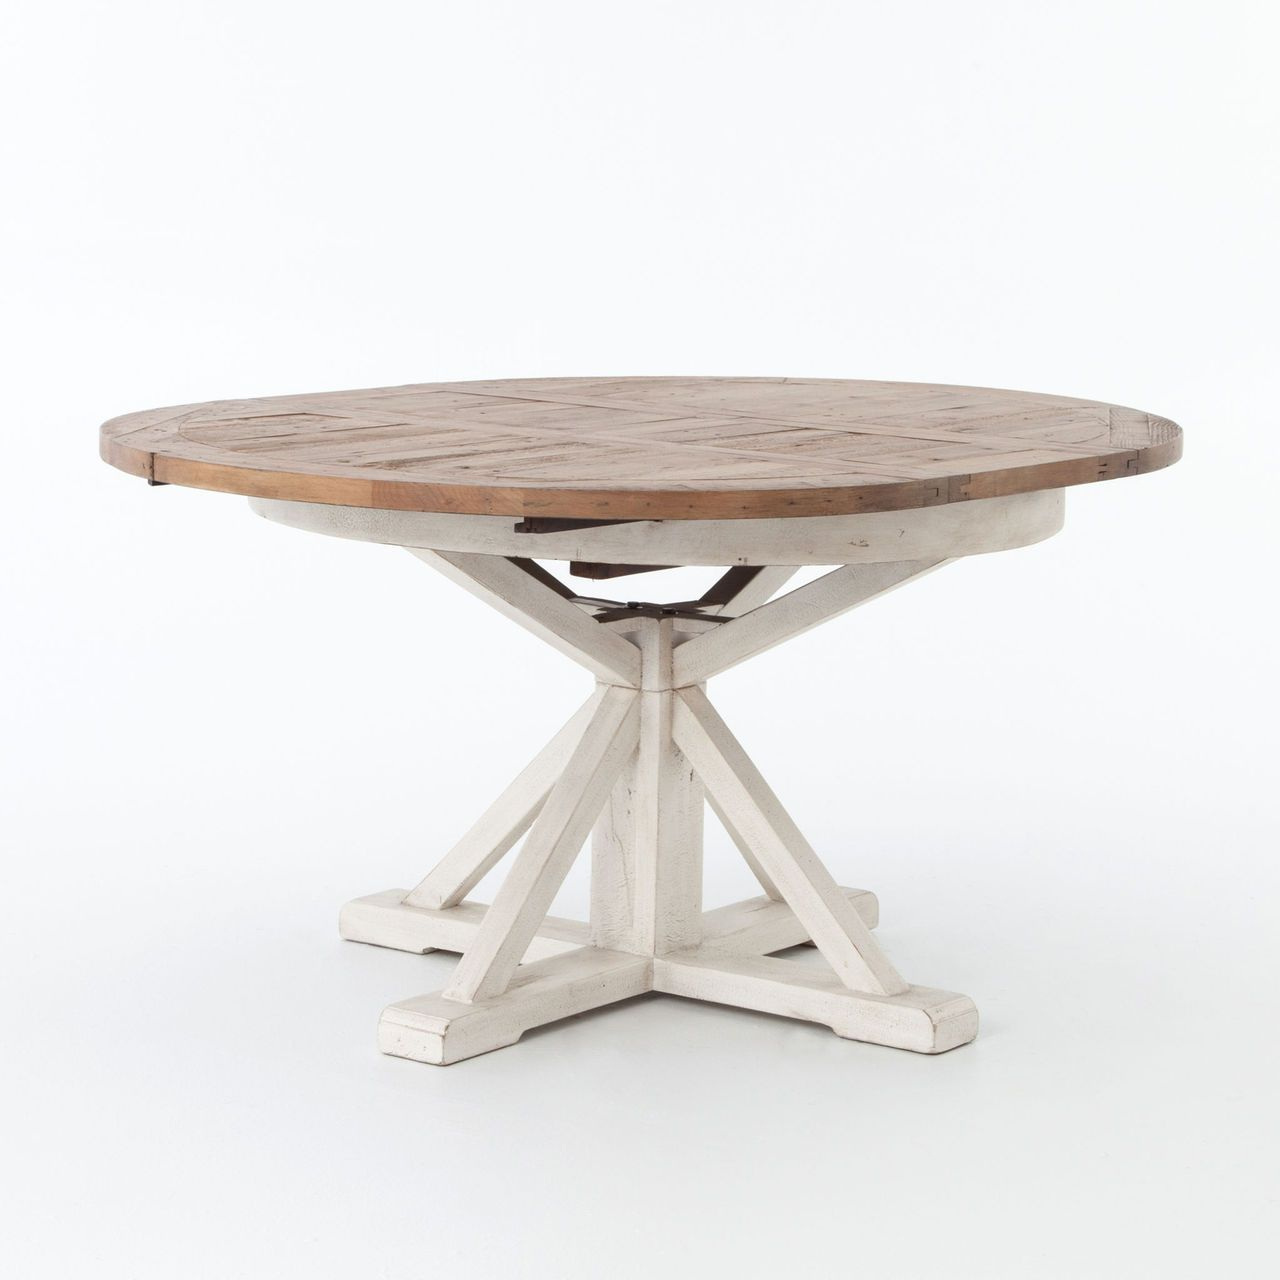 Cintra White Expandable Round Dining Table 63"